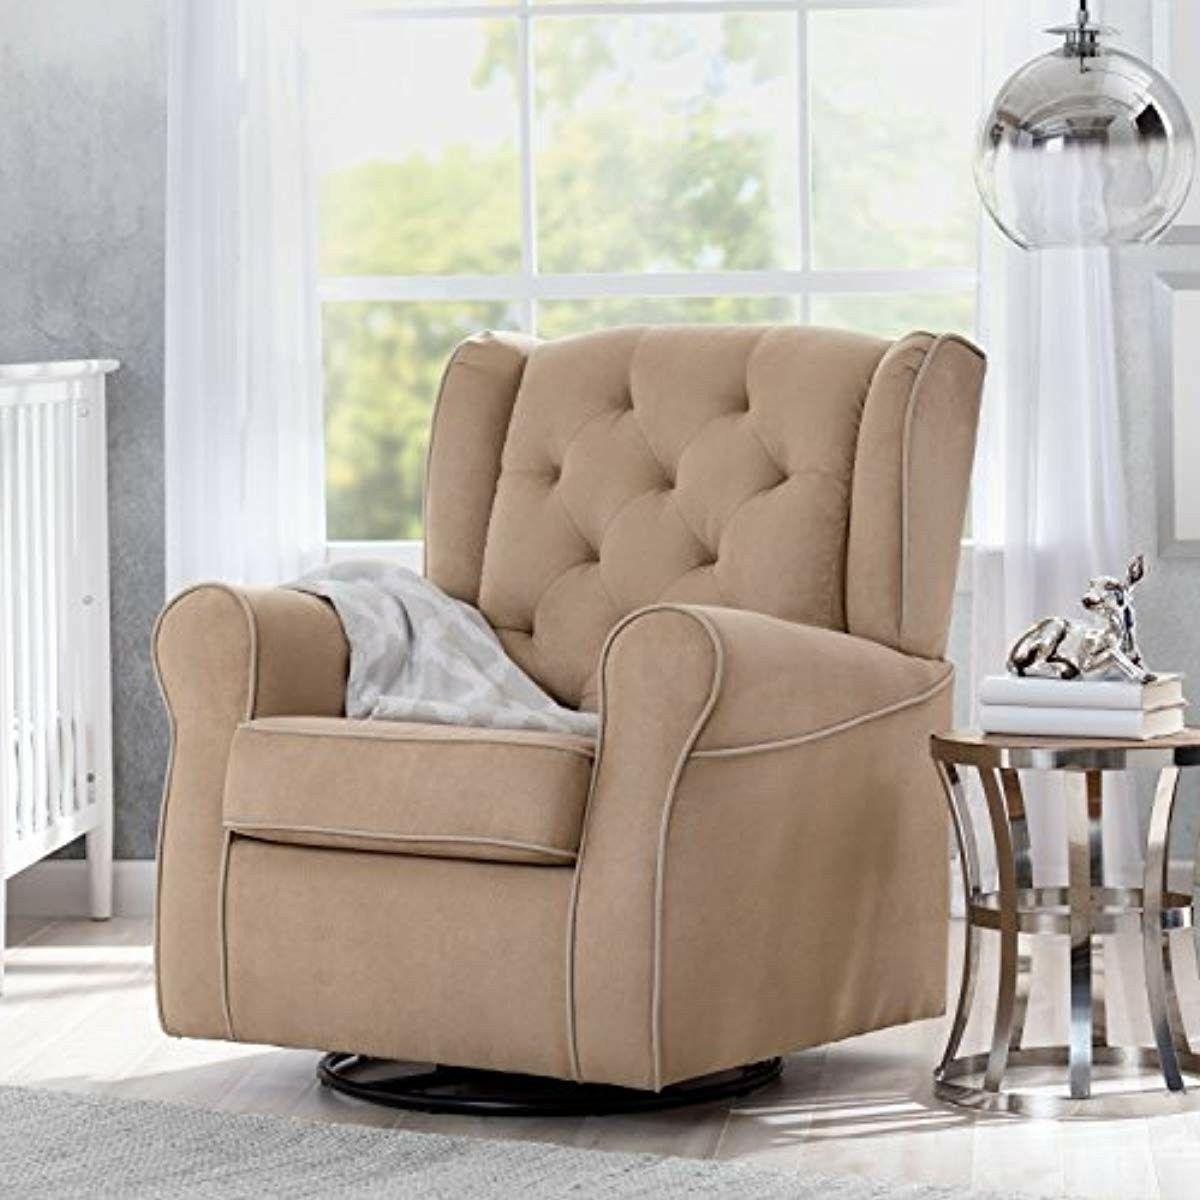 Swivel Rocking Chair Nursery Upholstered Accent Rocker